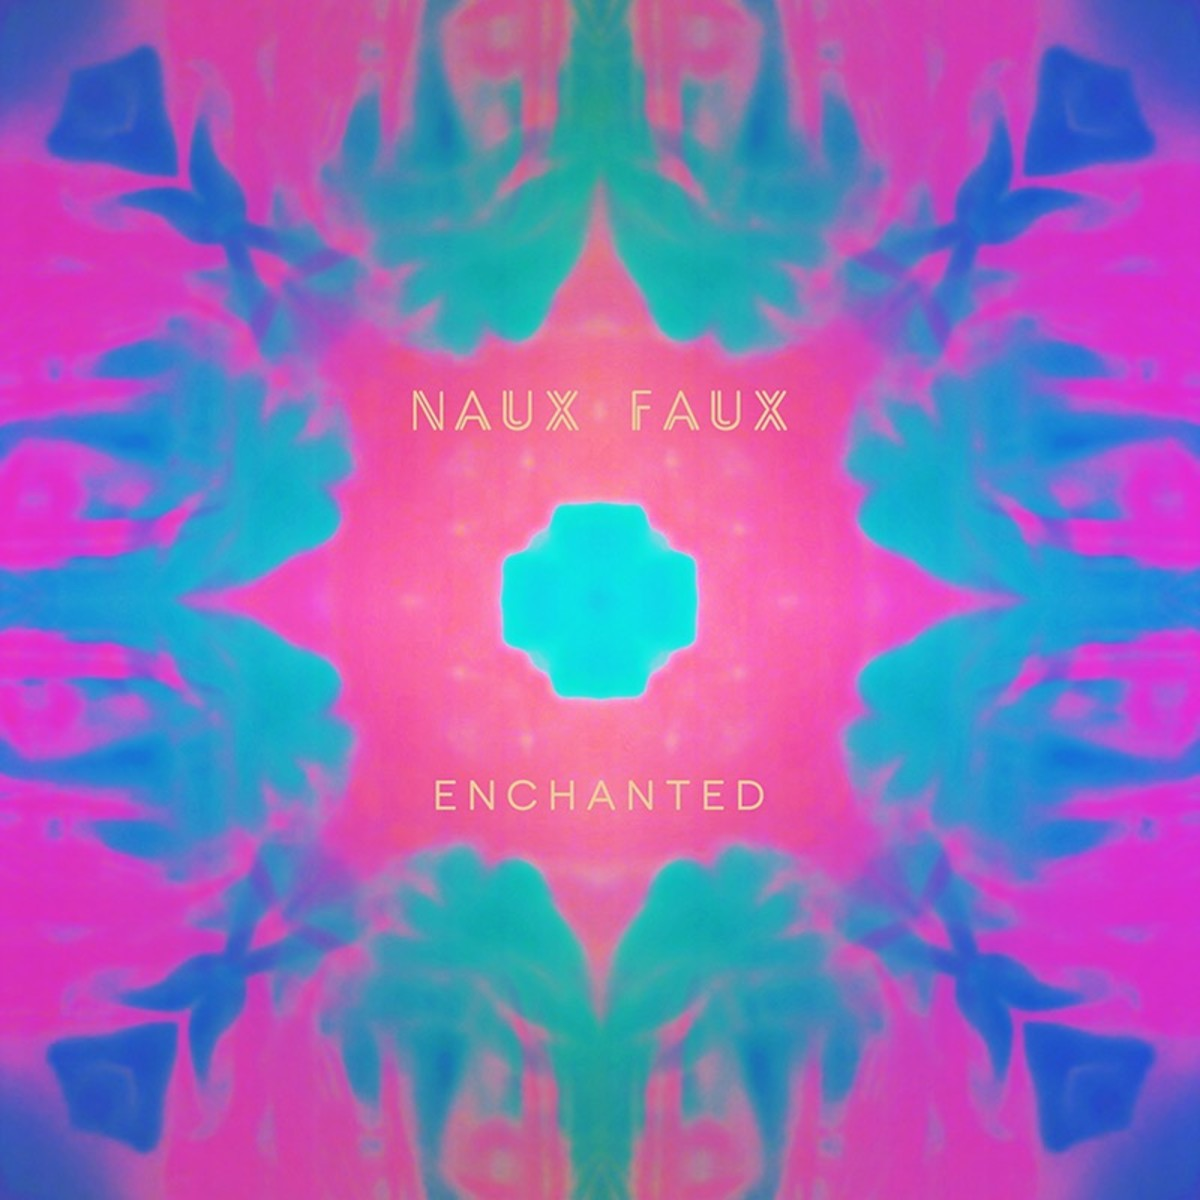 Naux Faux Enchanted